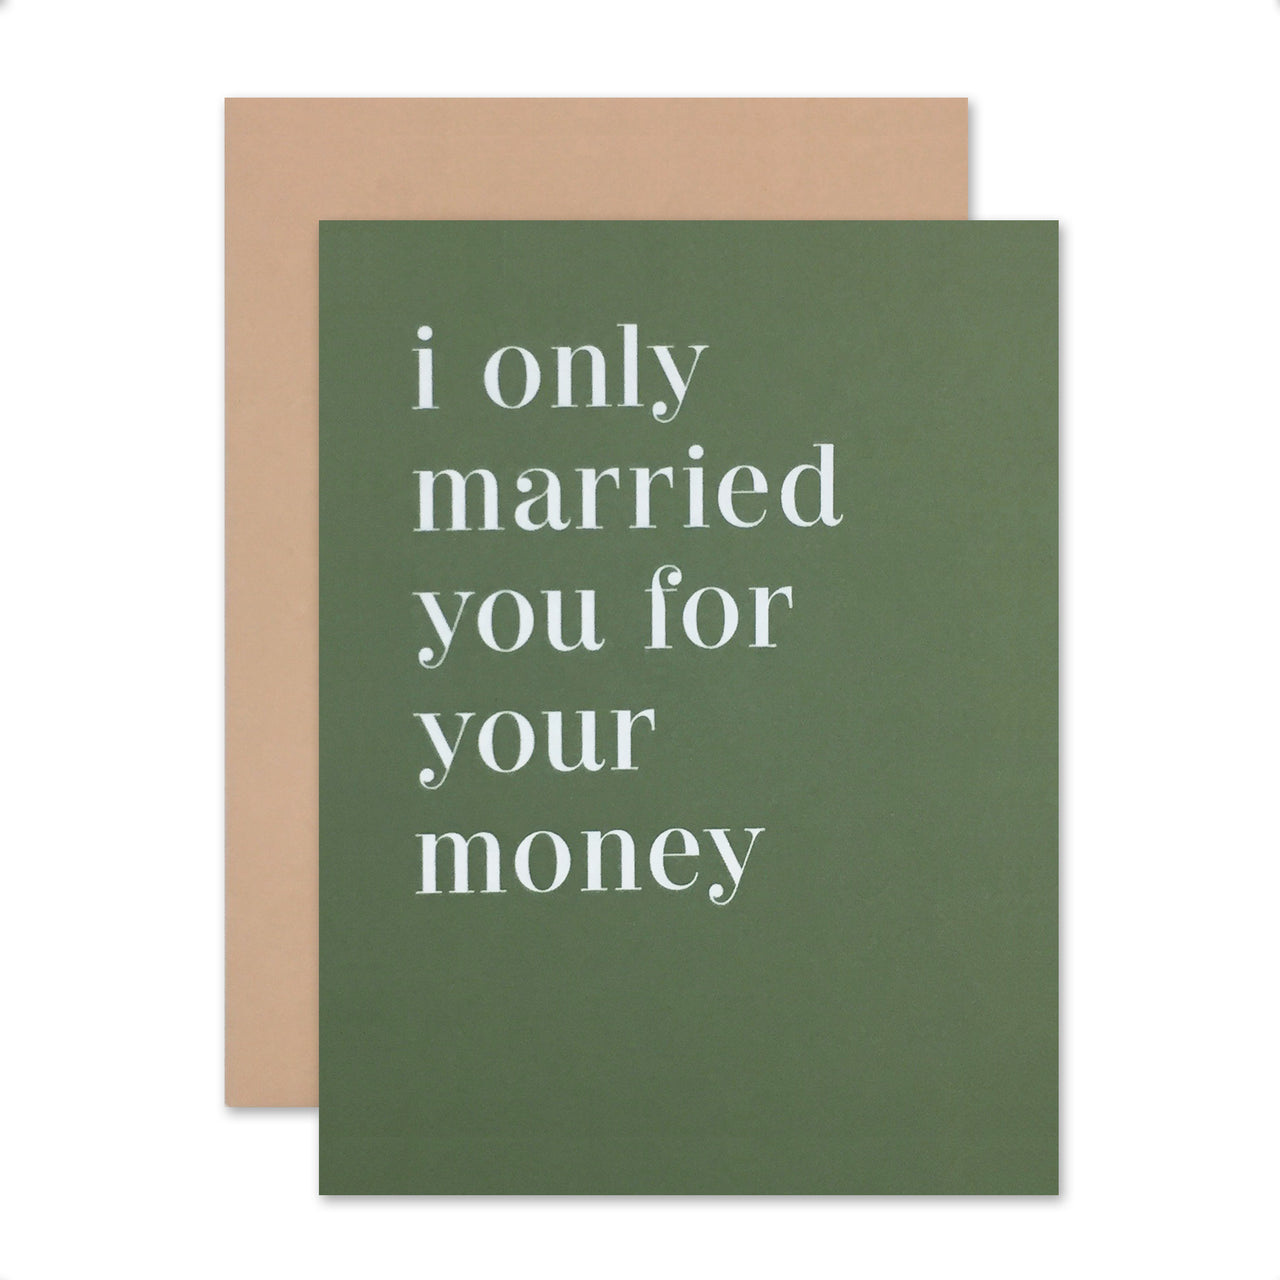 Married Money